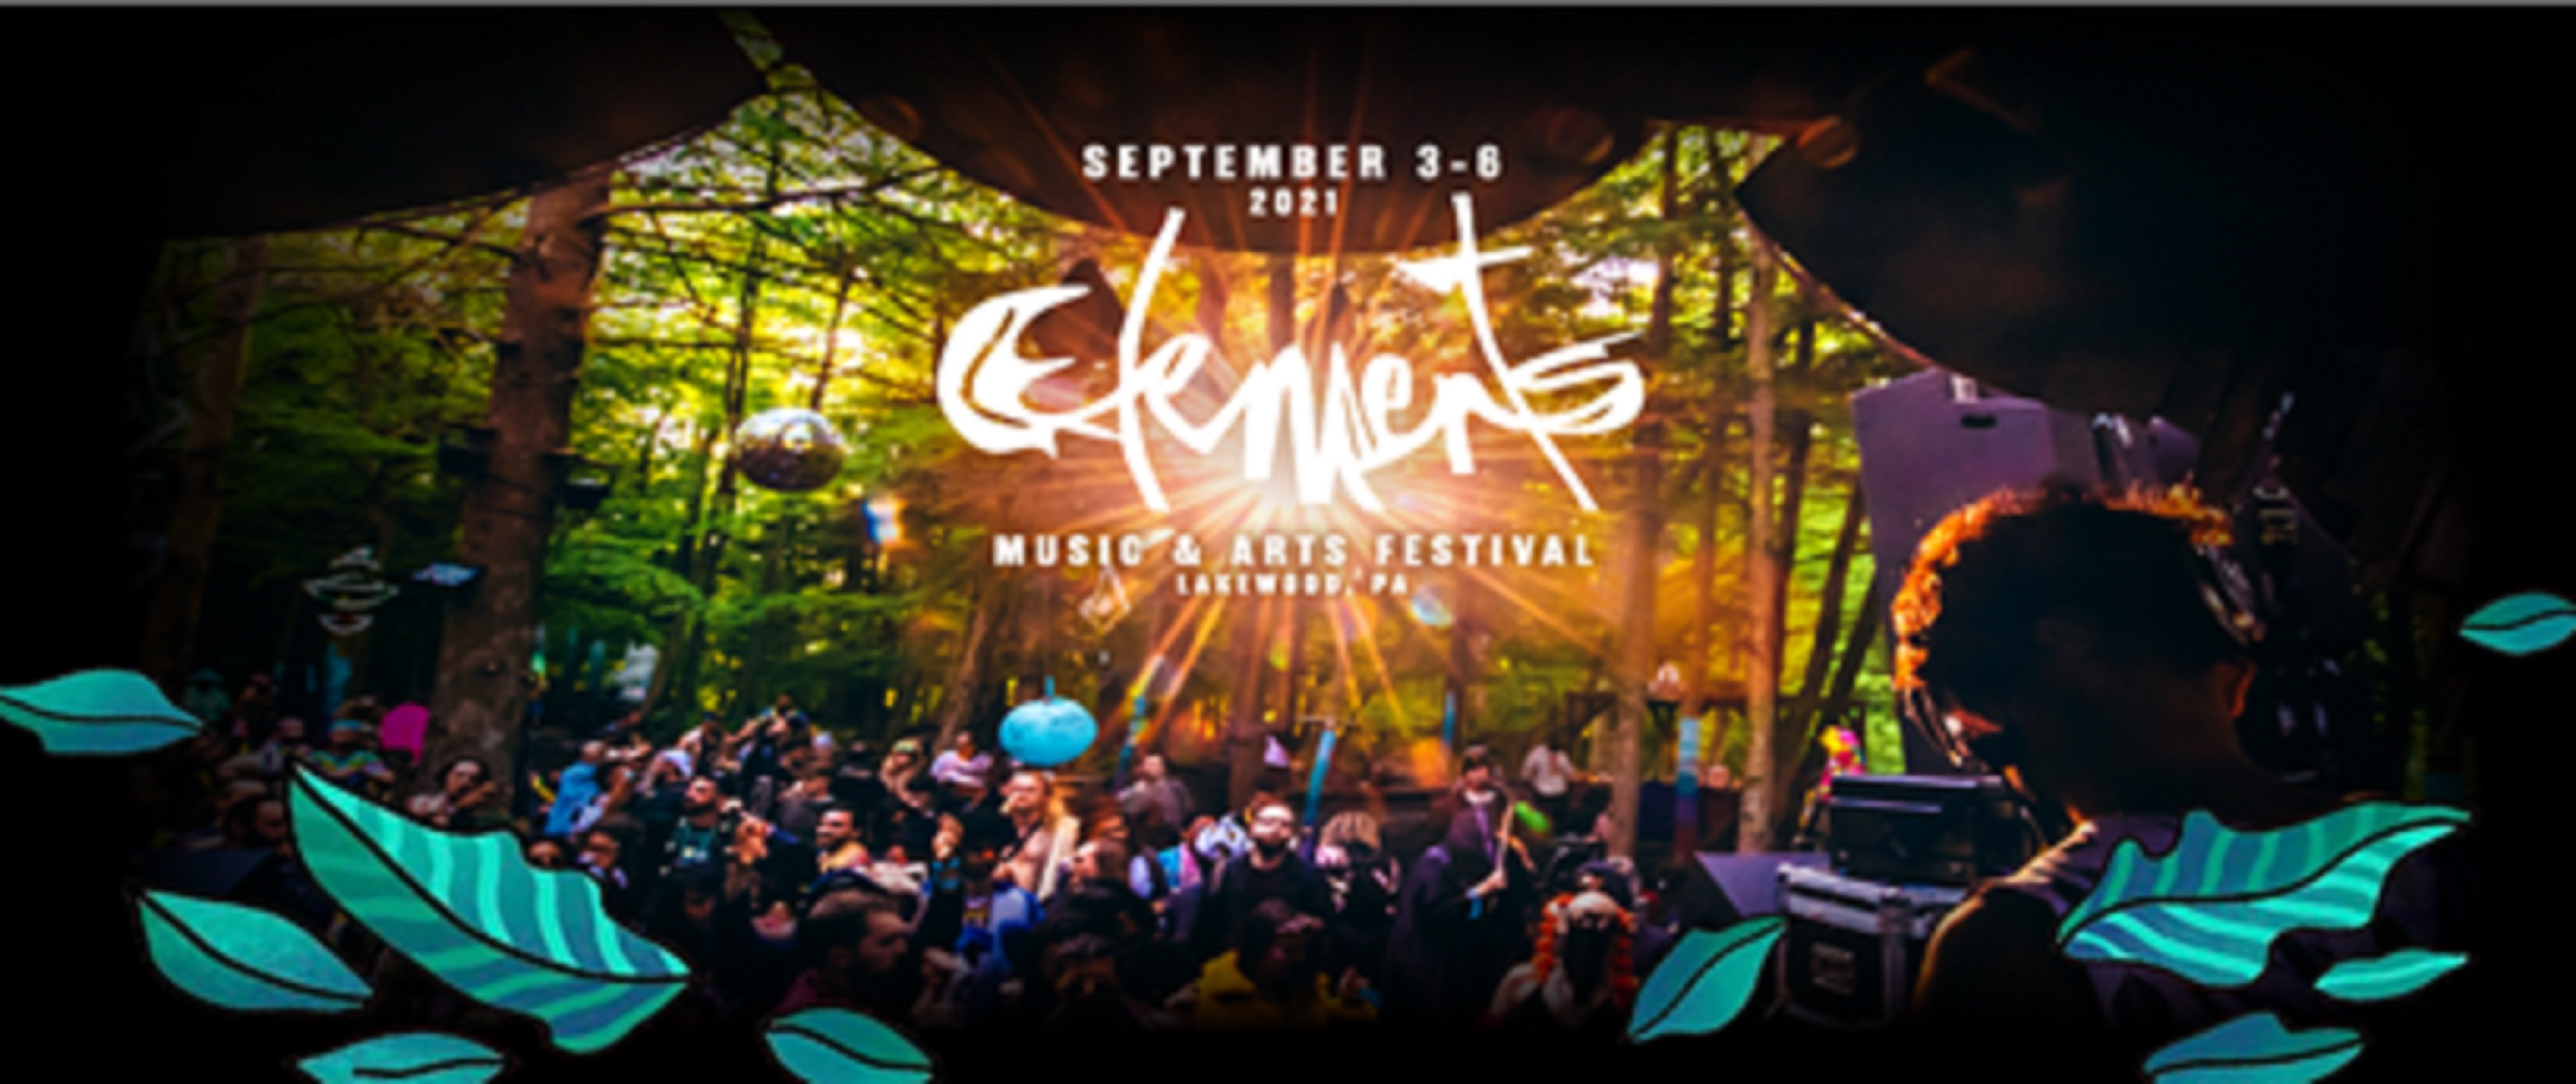 Celebrate & Co-Create at the 4th Annual Elements Music & Arts Festival